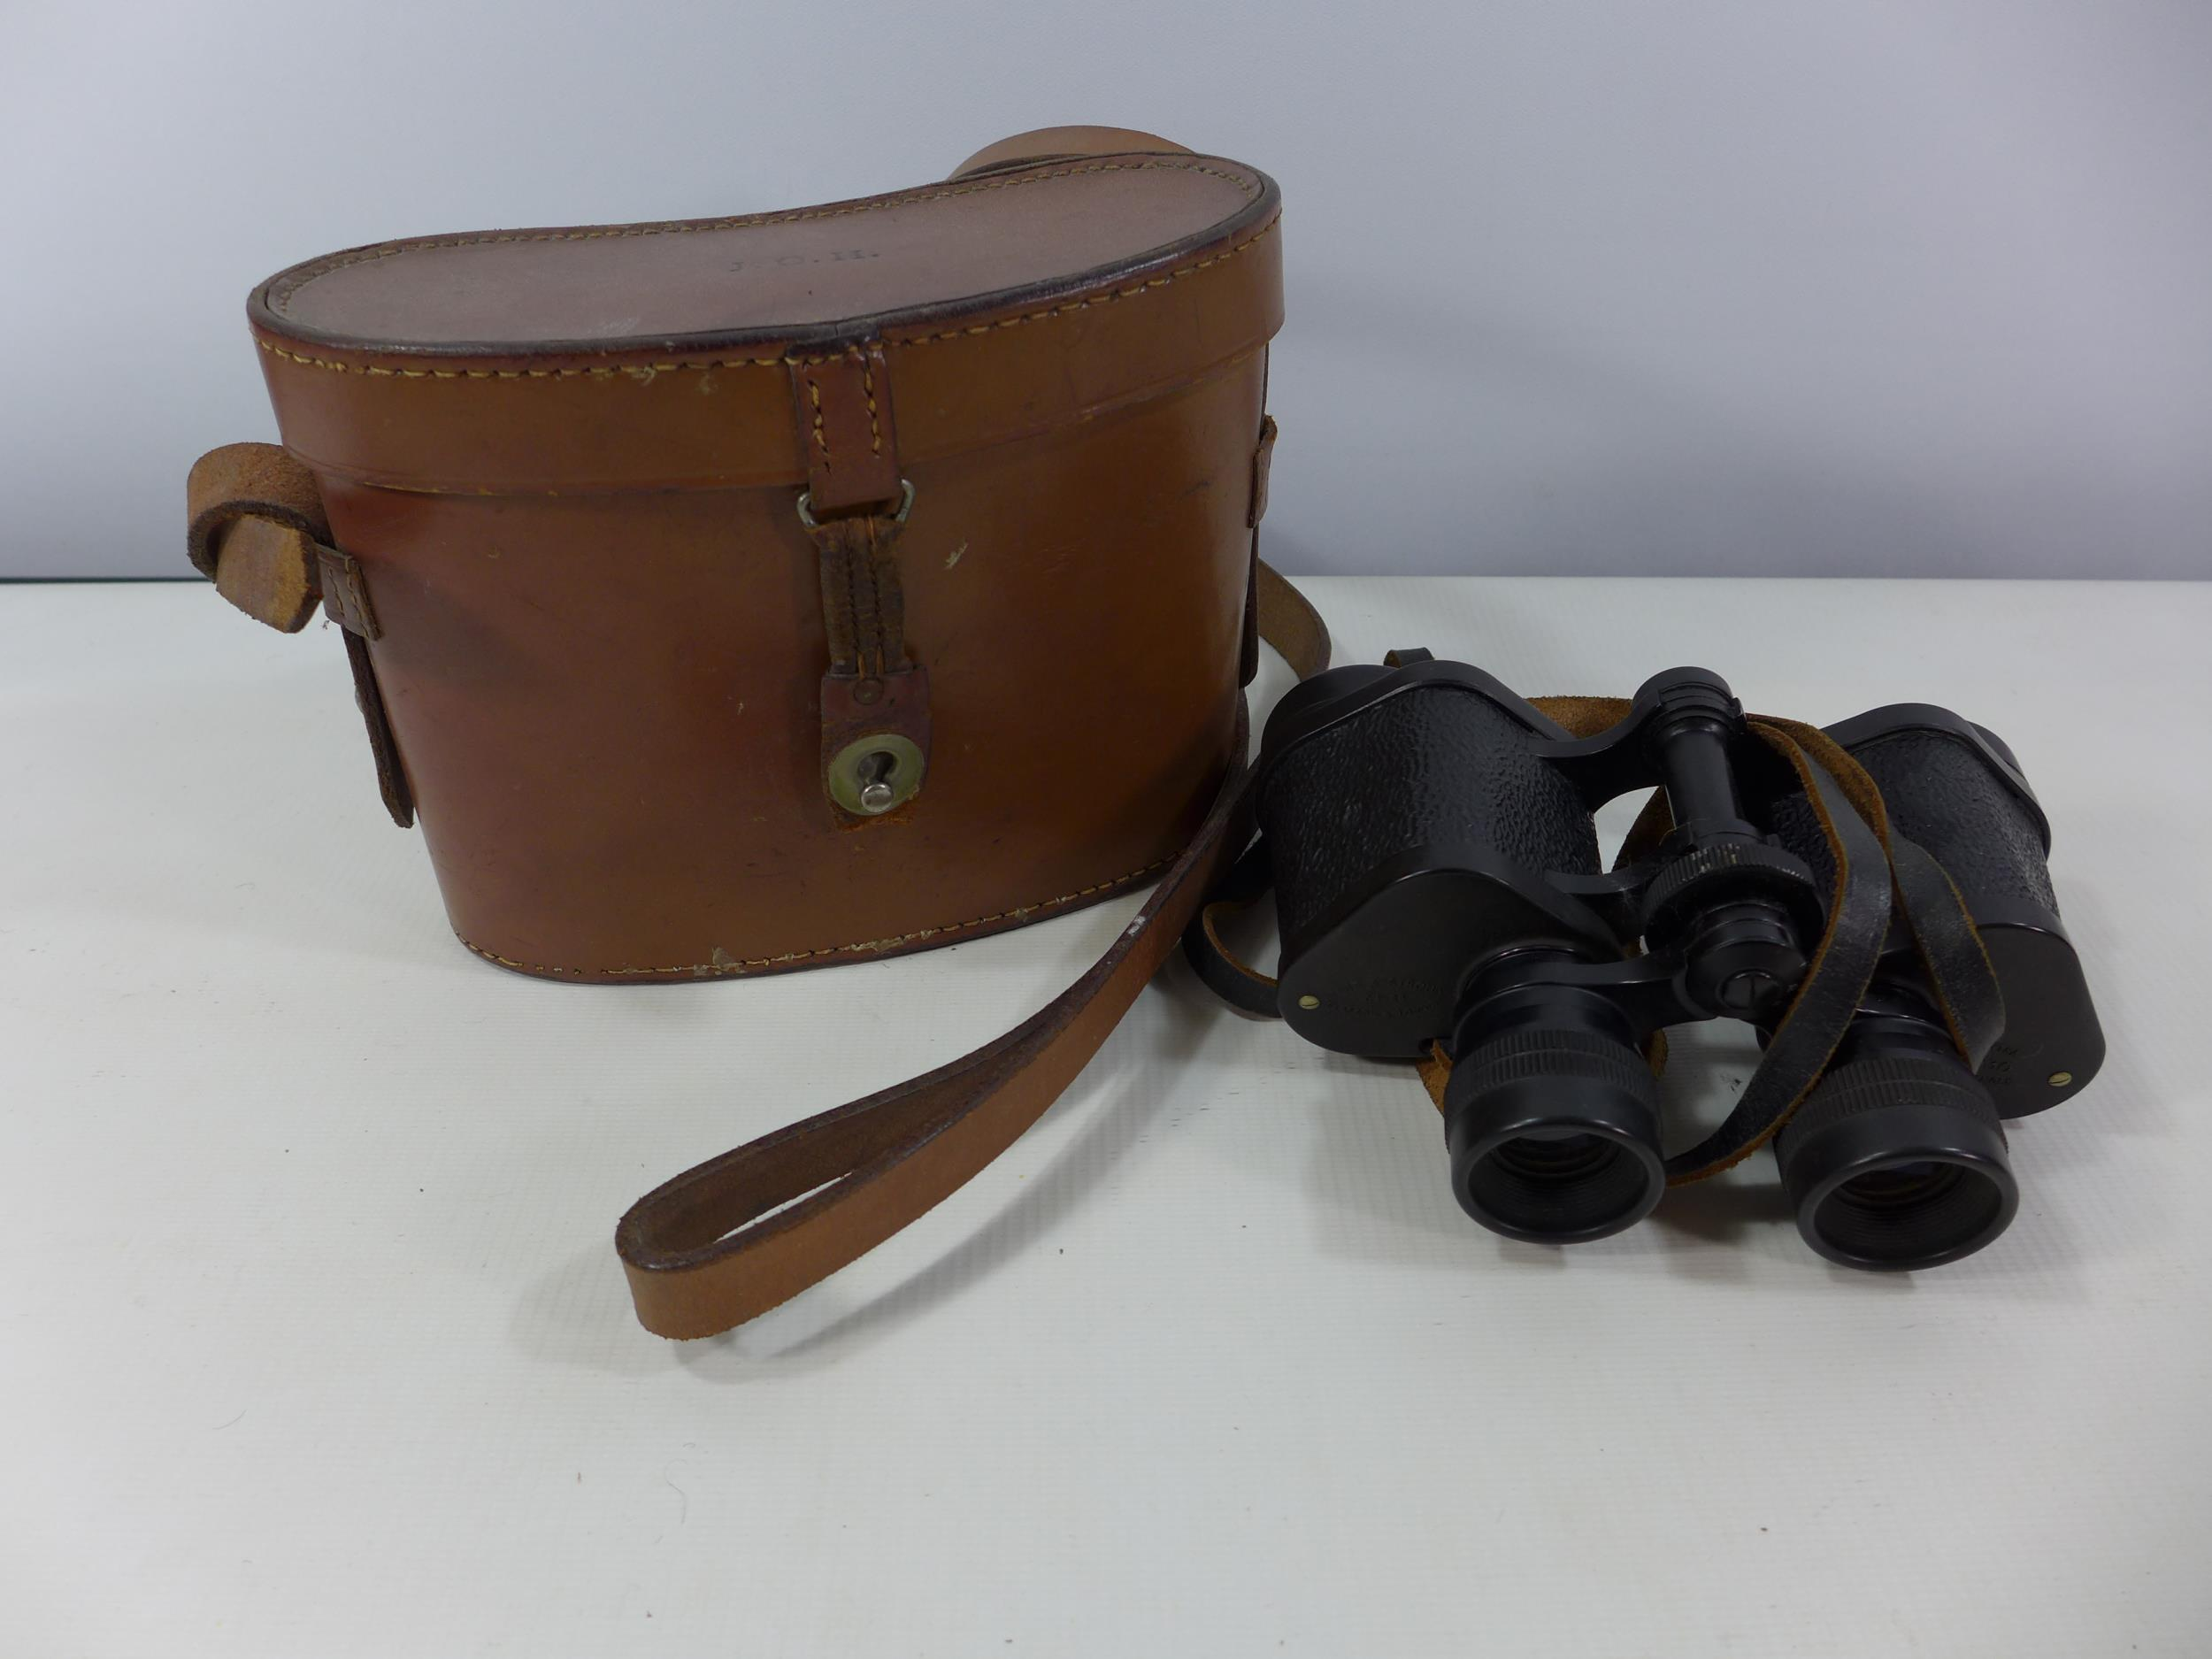 A PAIR OF BARR AND STROUD C.F.24 8X30 BINOCULARS AND LEATHER CASE